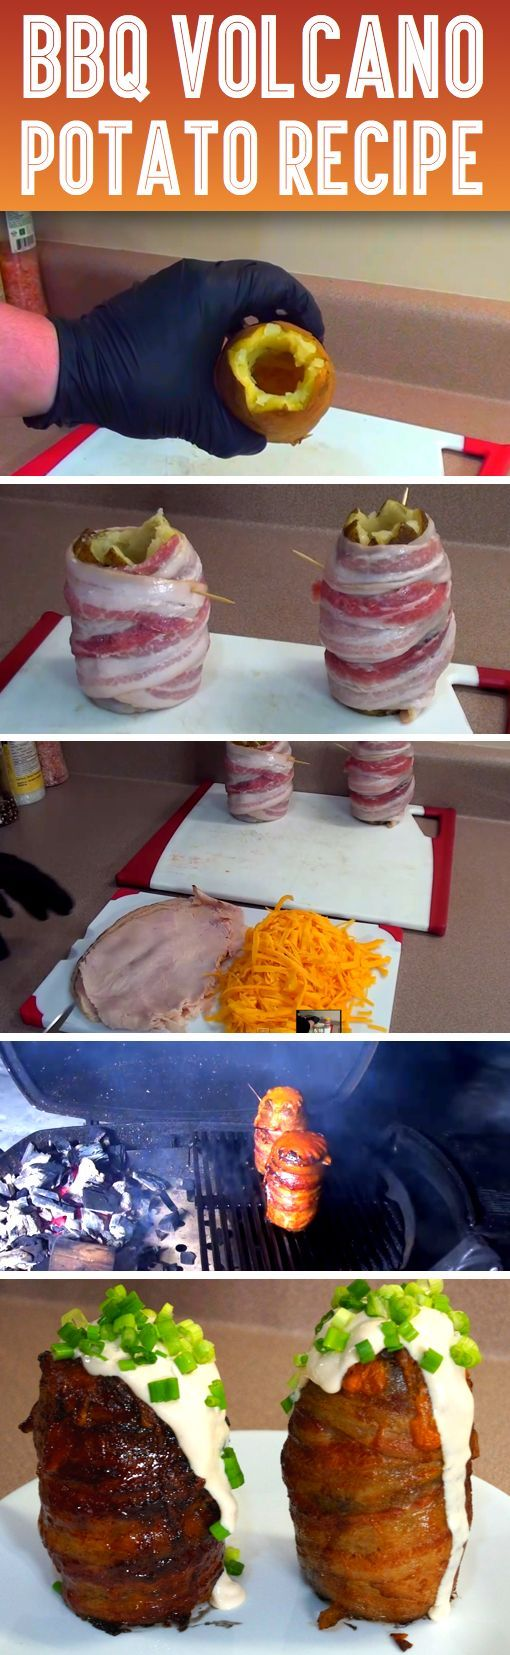 Here's how you can make an amazing Volcano Potato! - Click on the picture to see ingredients and instructions!